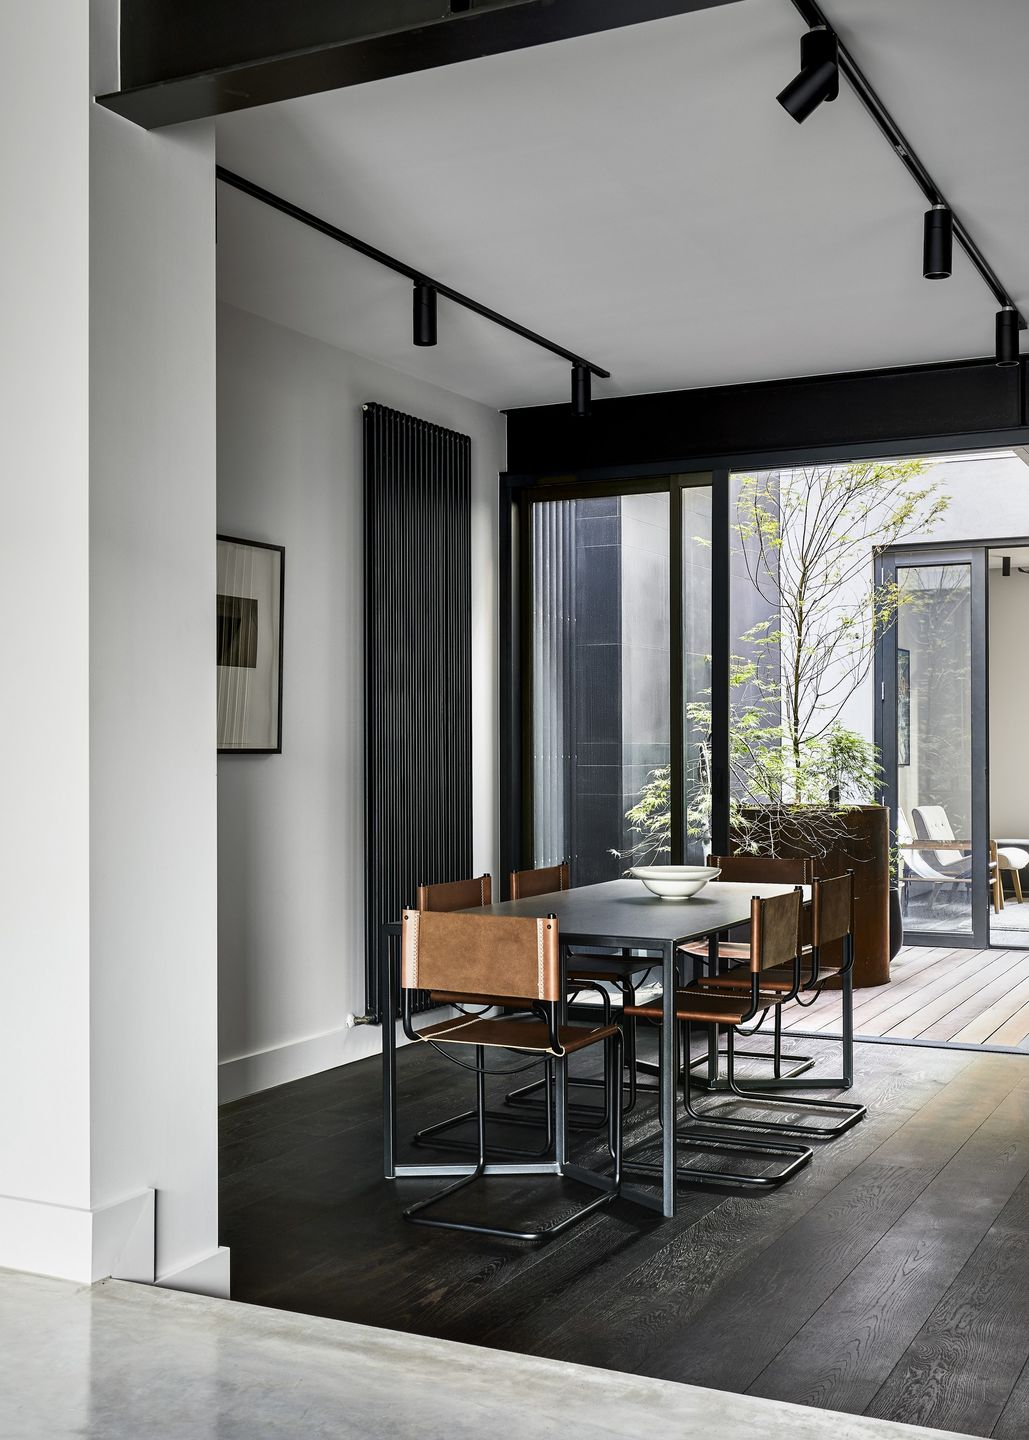 Terrace Rebuilt To Draw In Natural Light – Richmond Terrace by Robert Nichol & Sons